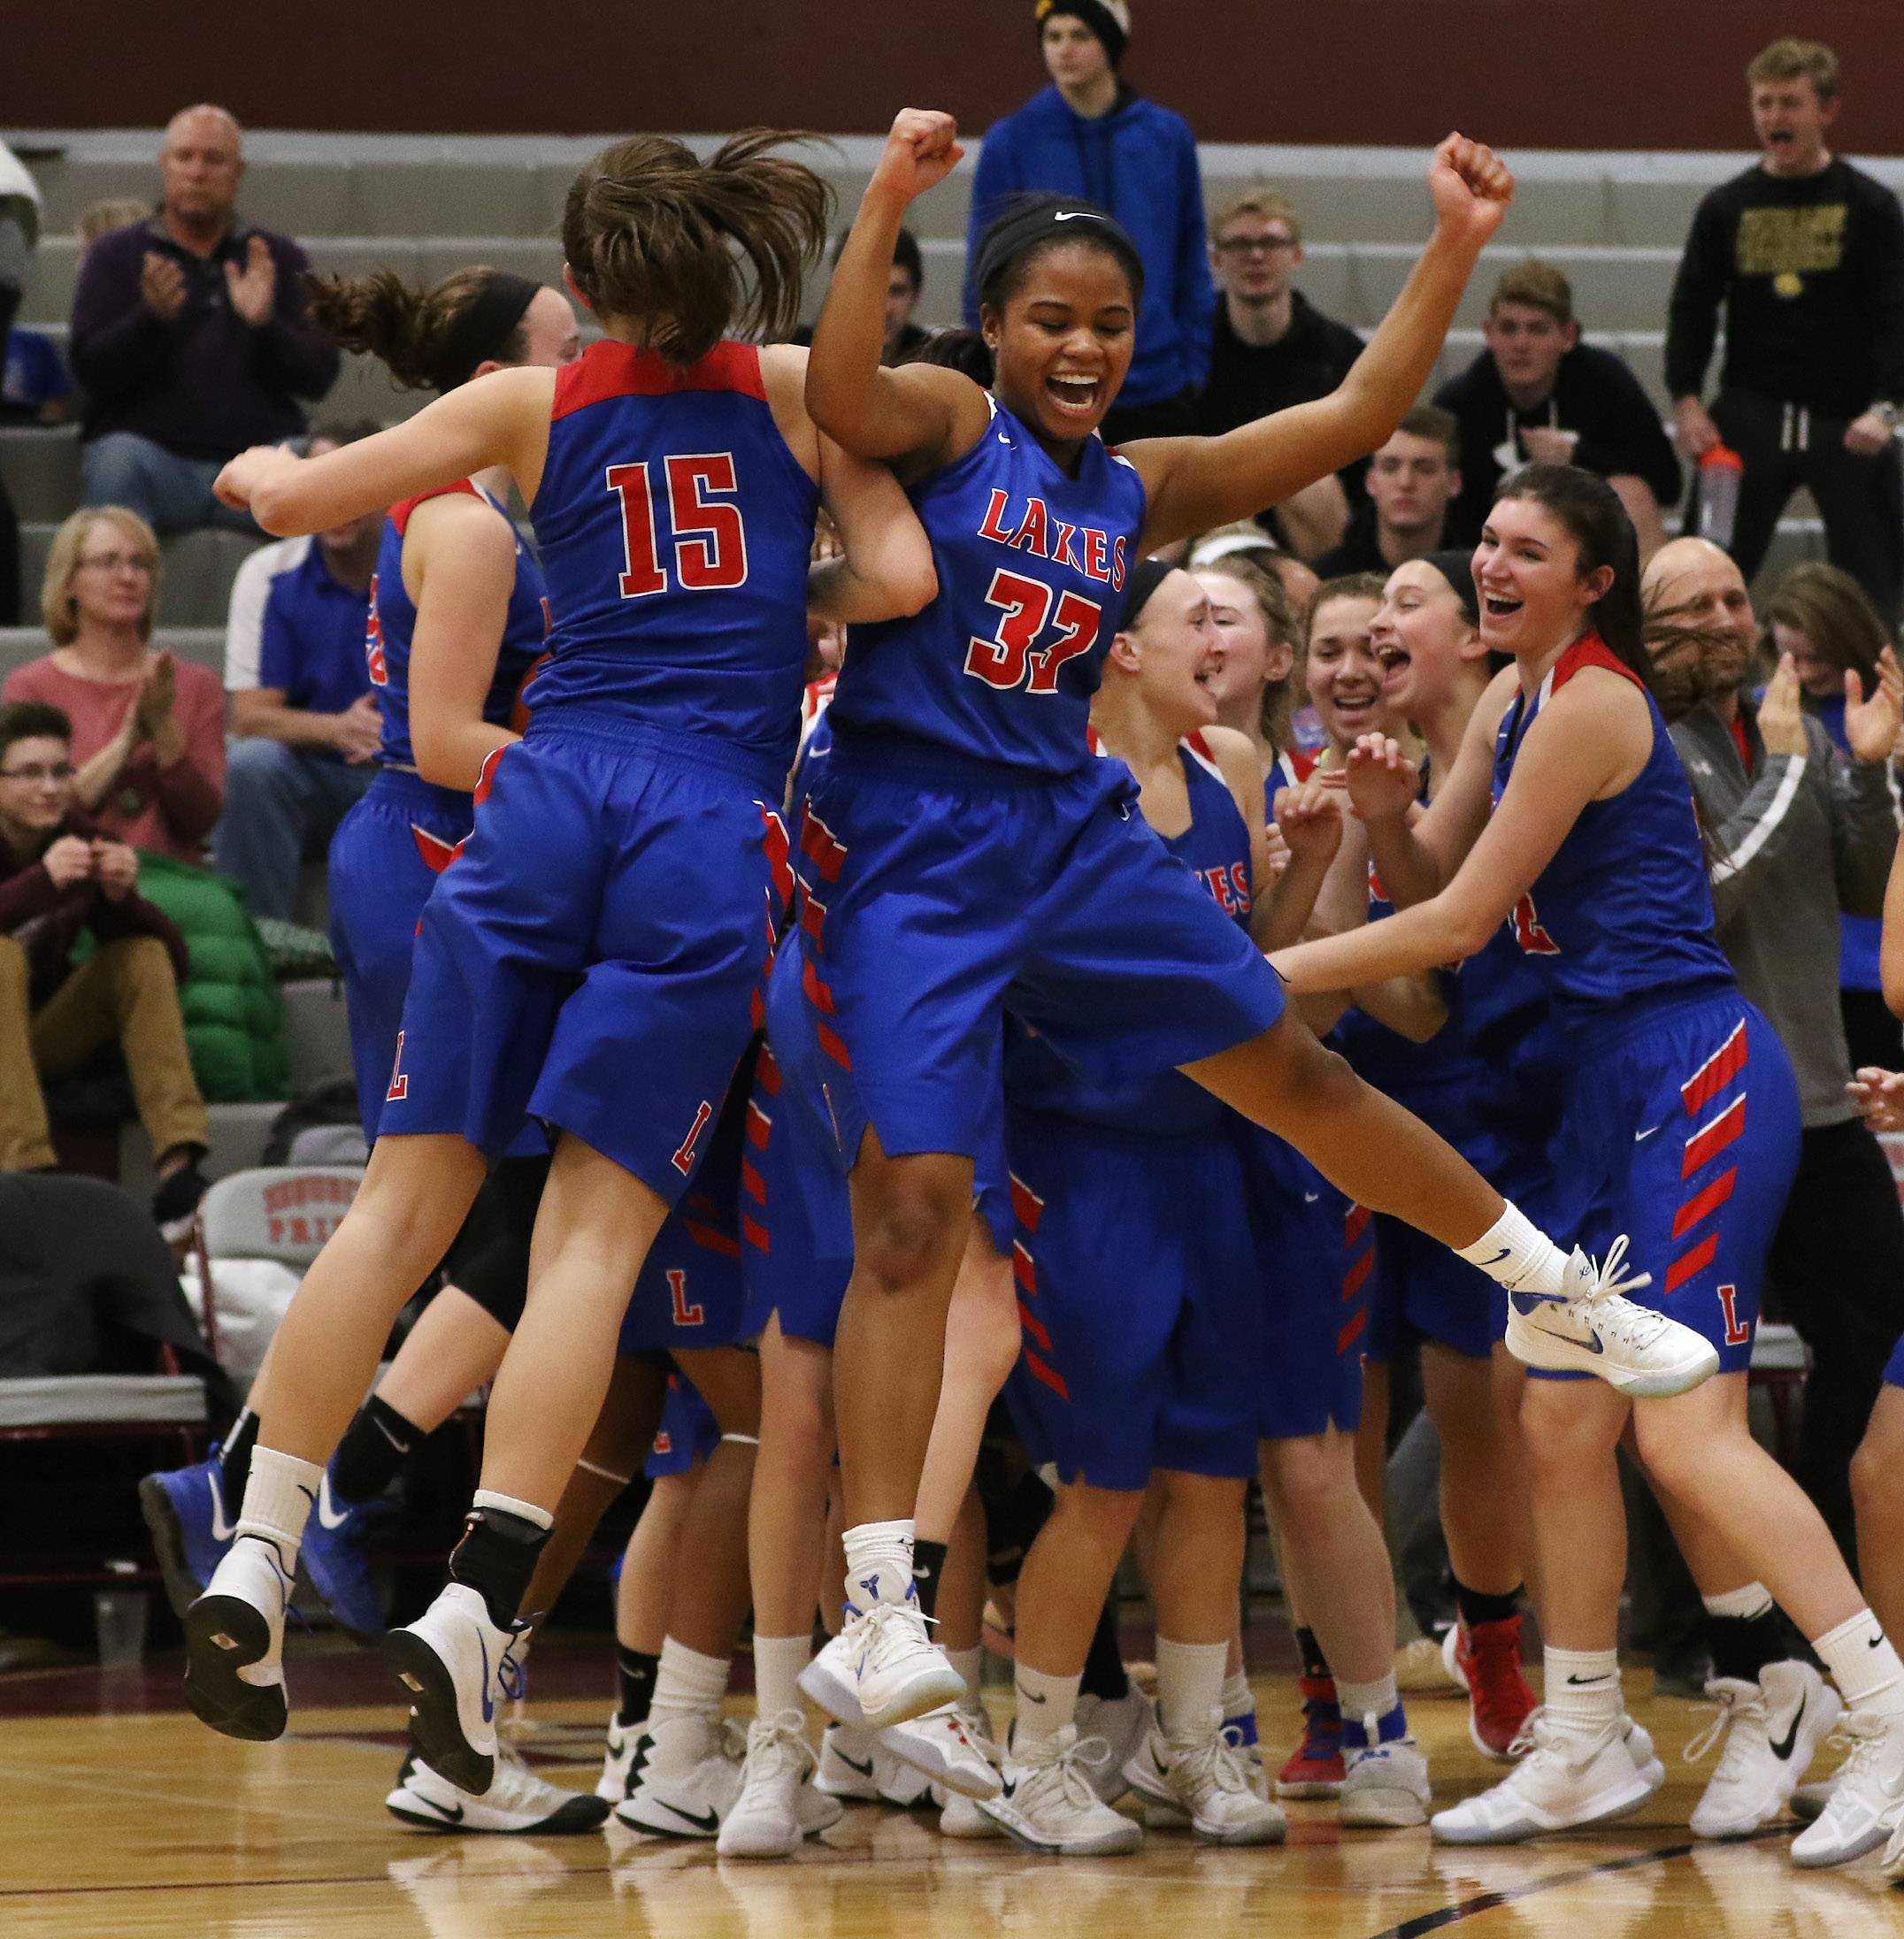 Lakes' Sara Smith, left, bumps with Brittany Washington as the Eagles celebrate a 46-38 victory over Vernon Hills in Class 3A regional championship play Thursday at Antioch.